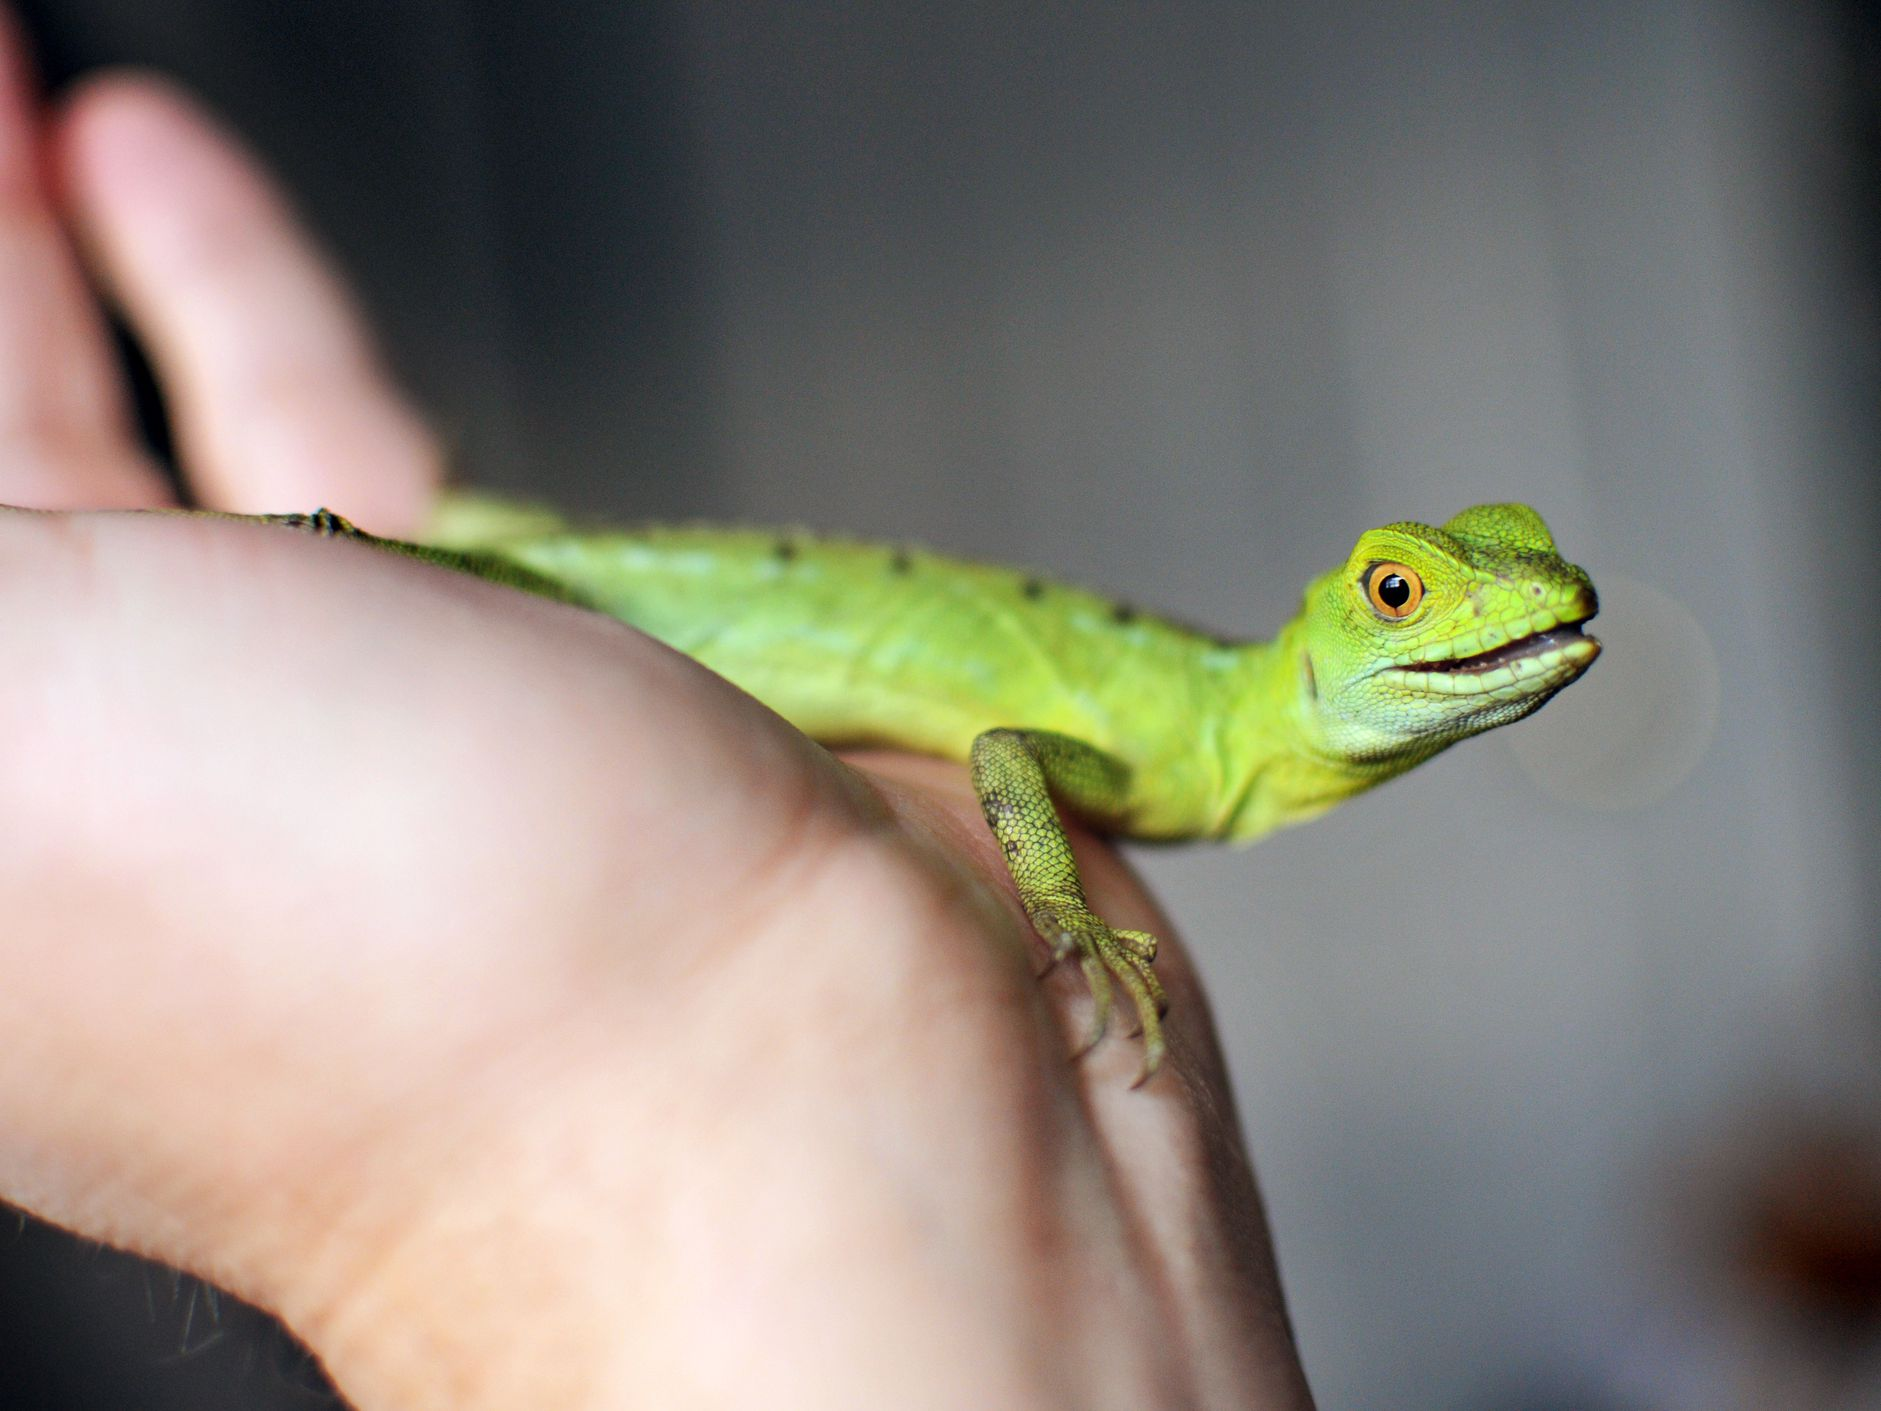 How to Choose and Care for a Pet Lizard